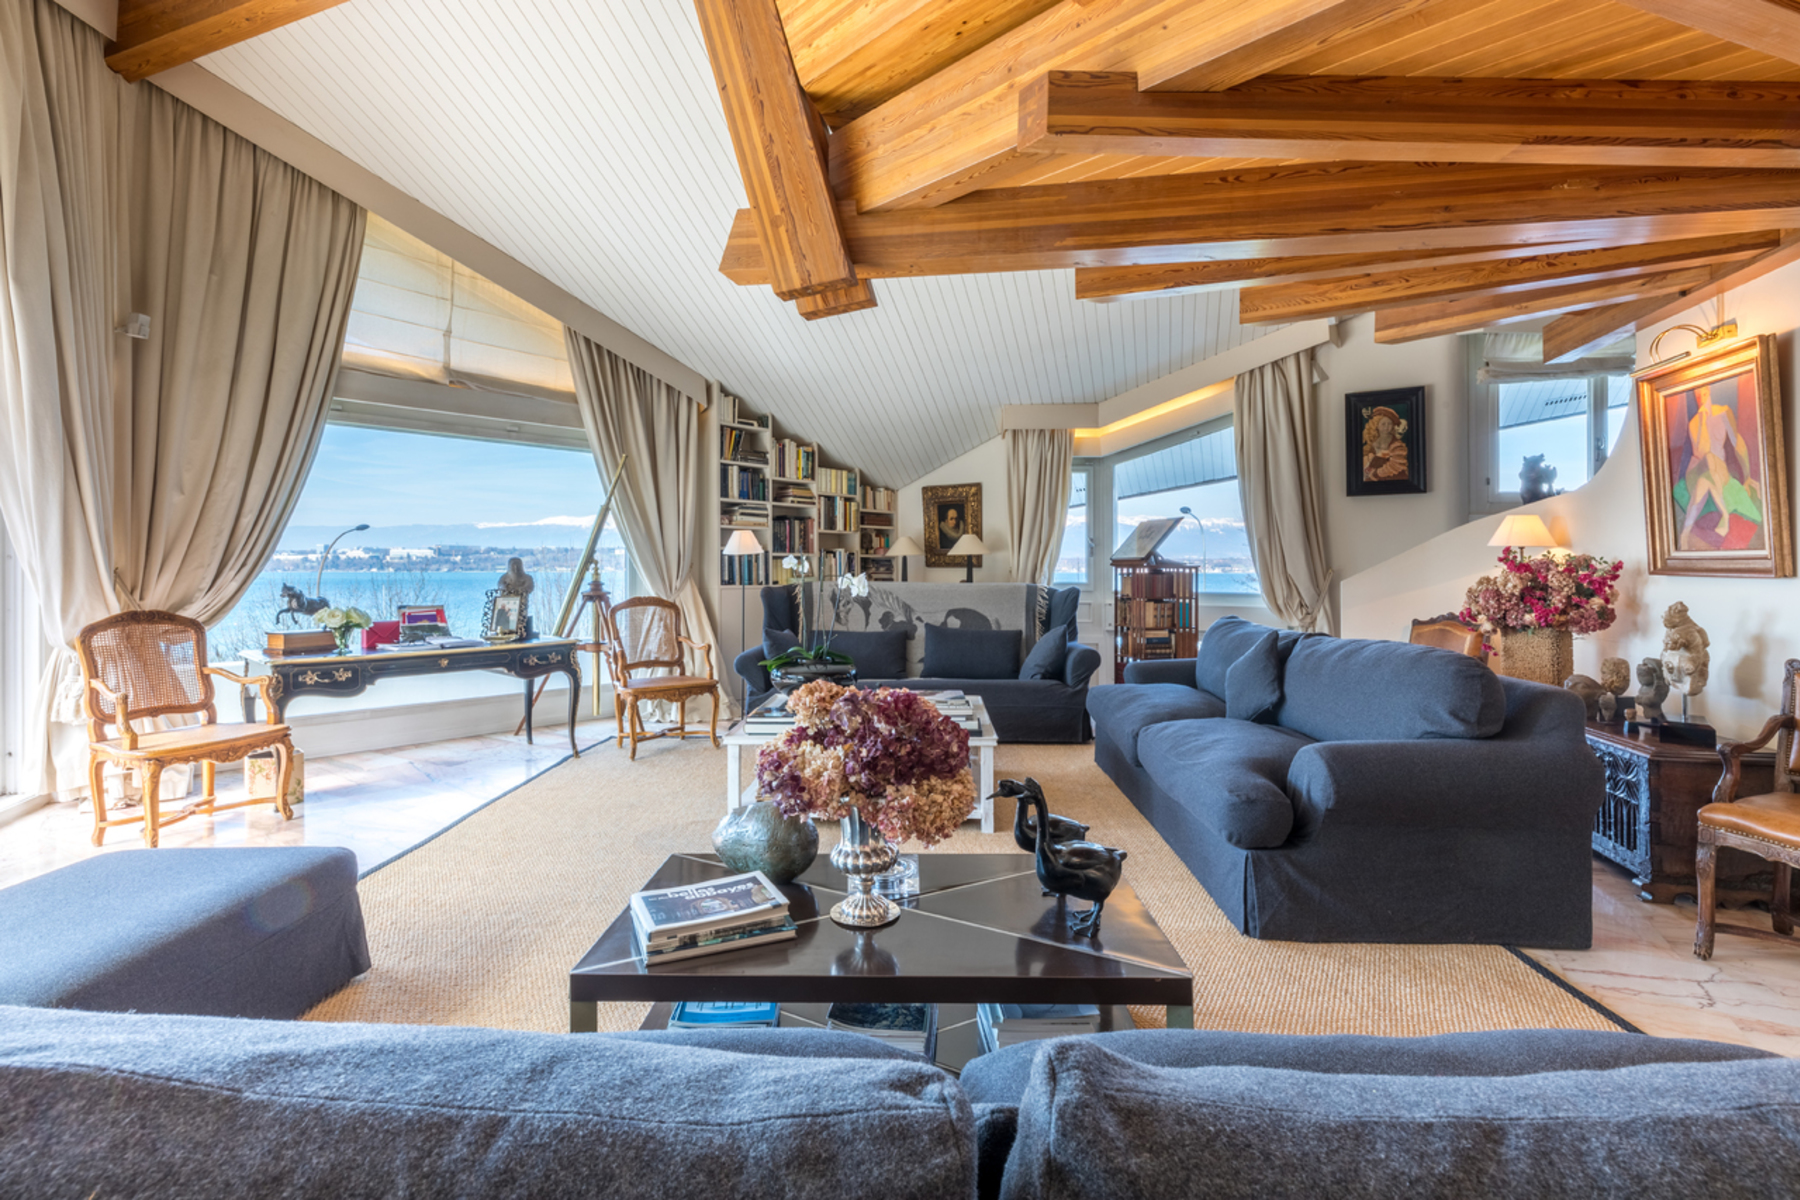 Property for Sale at Prestigious address with breathtaking views, property in perfect condition Cologny Cologny, Geneva 1223 Switzerland